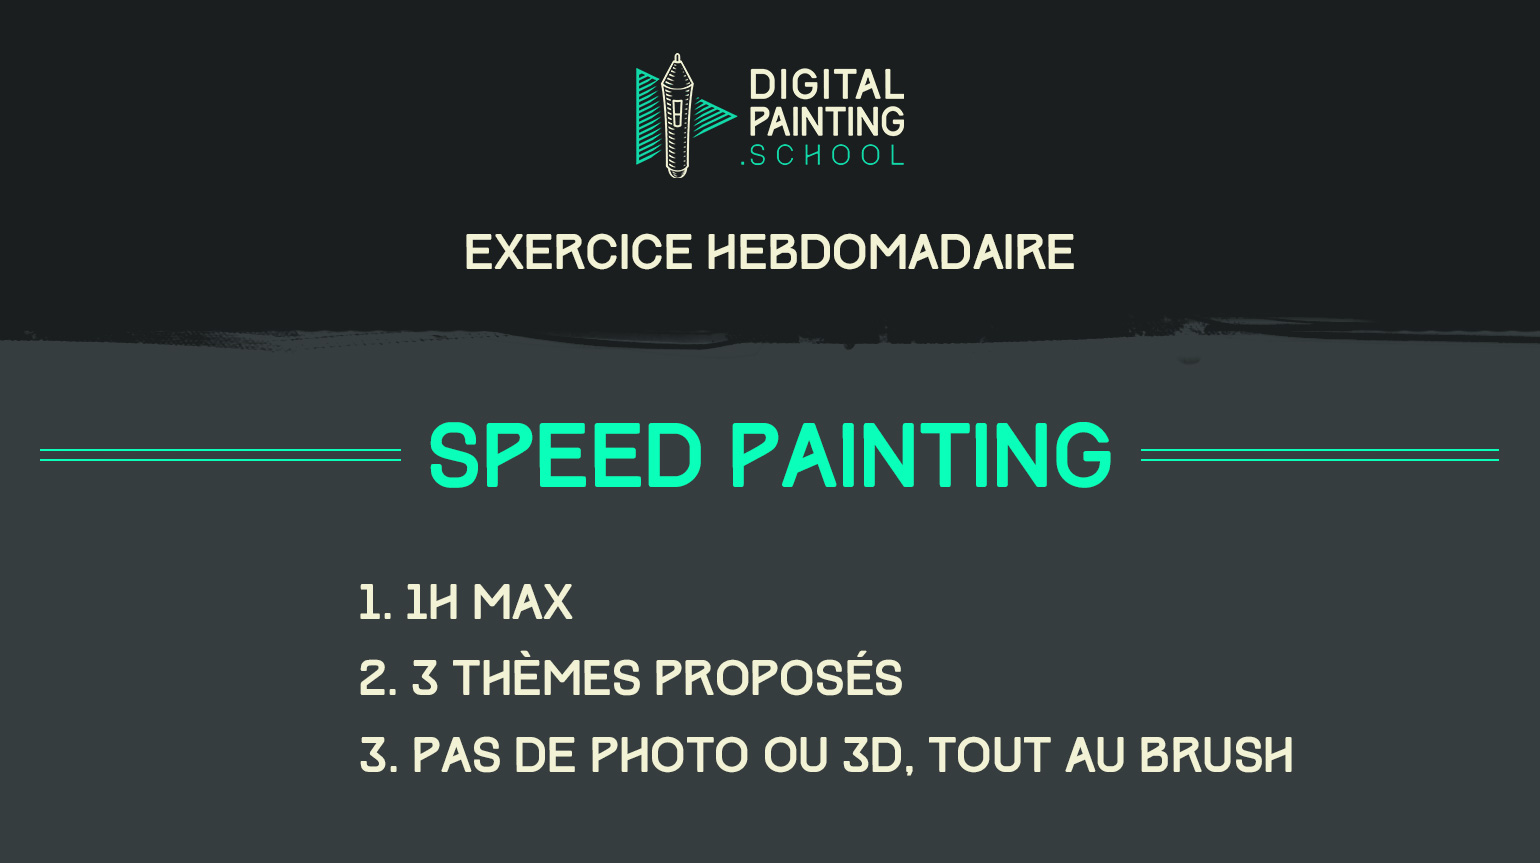 Speed painting en exercice hebdomadaire